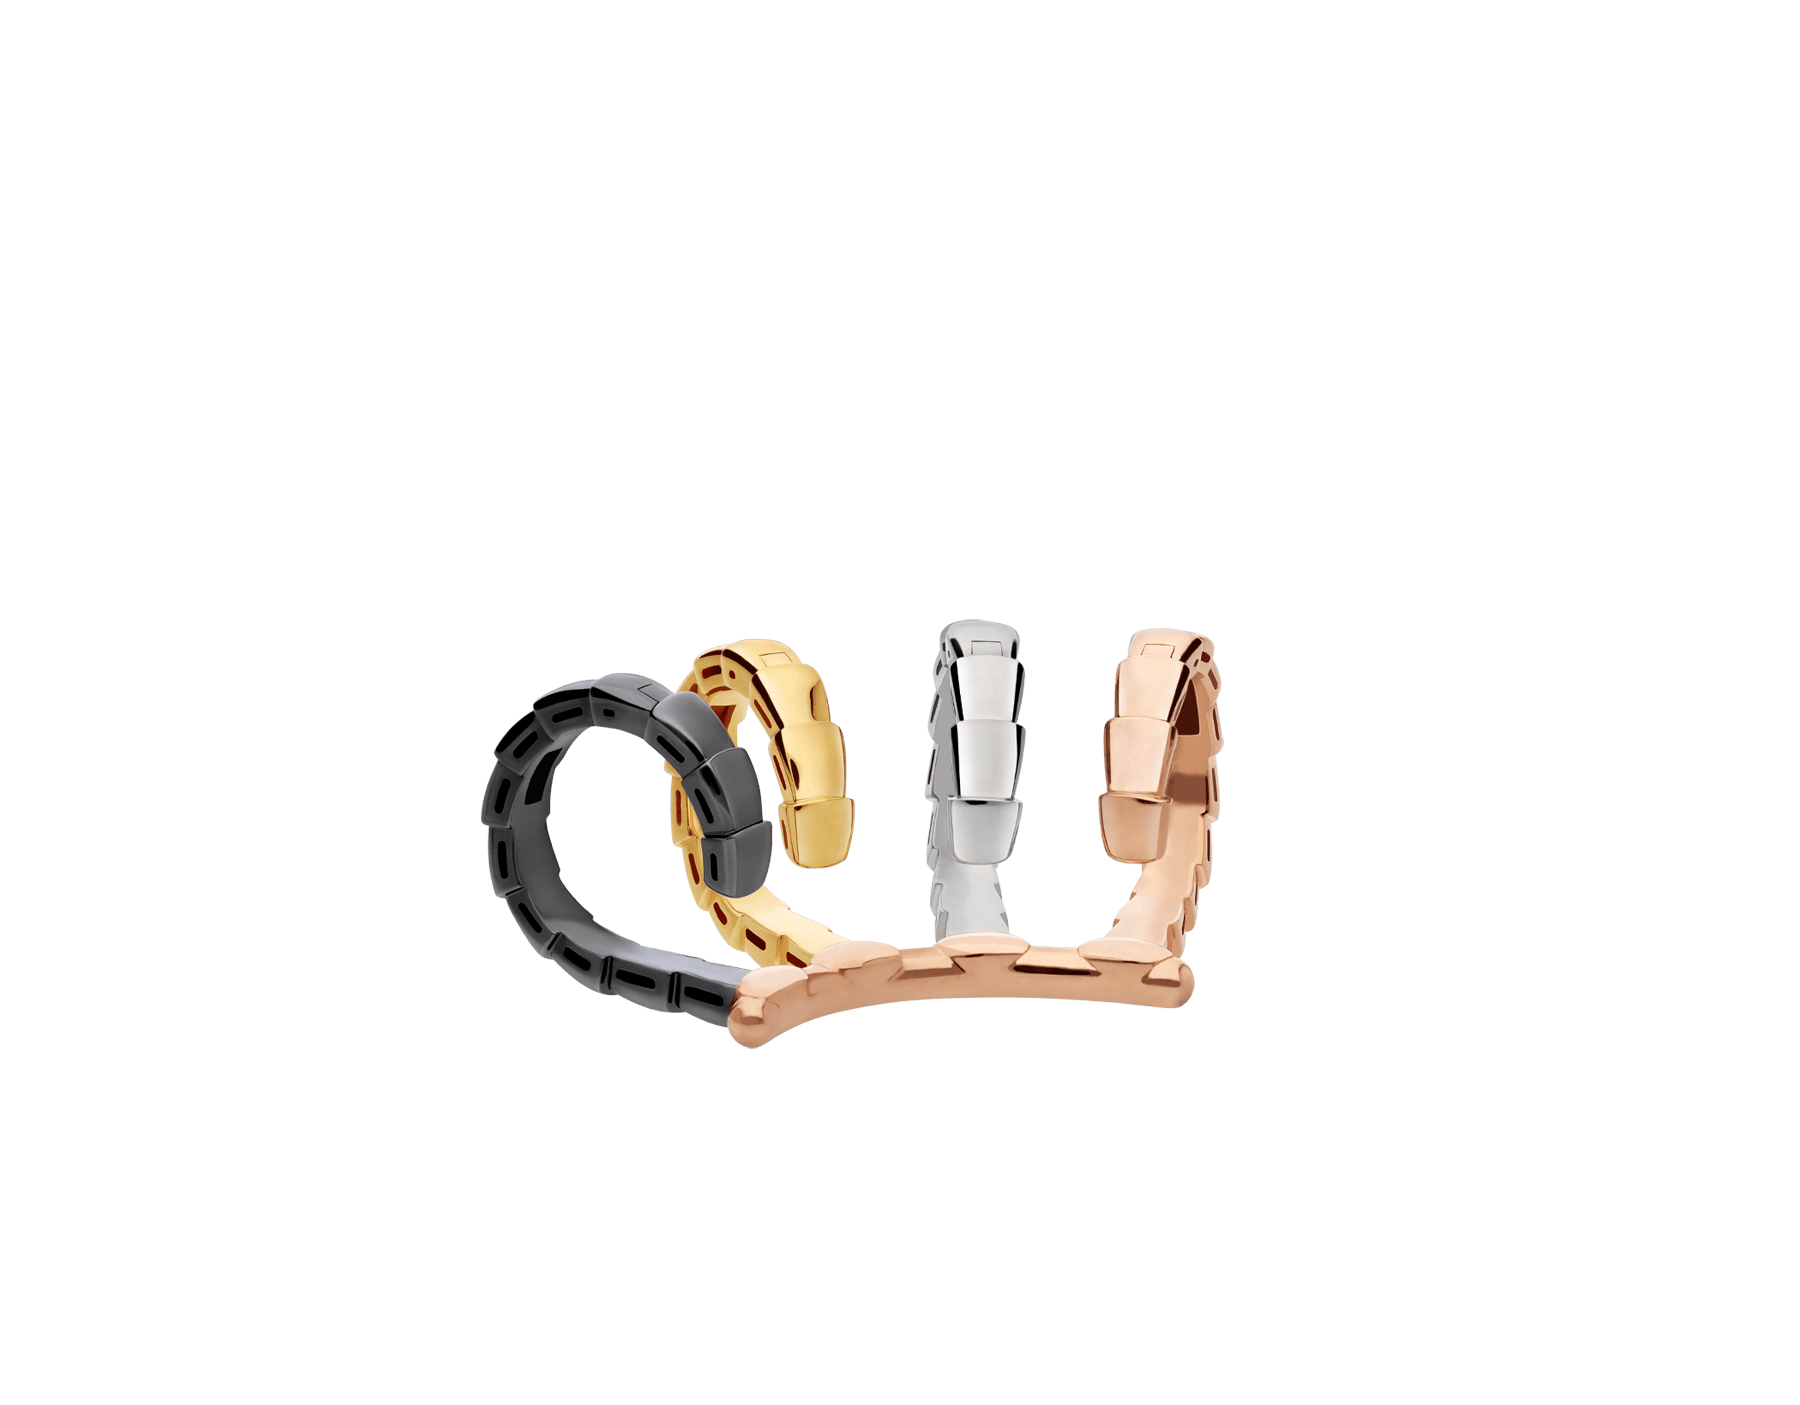 Serpenti Viper Viper single earring in 18 kt rose, white and yellow gold, and black rhodium 356173 image 2